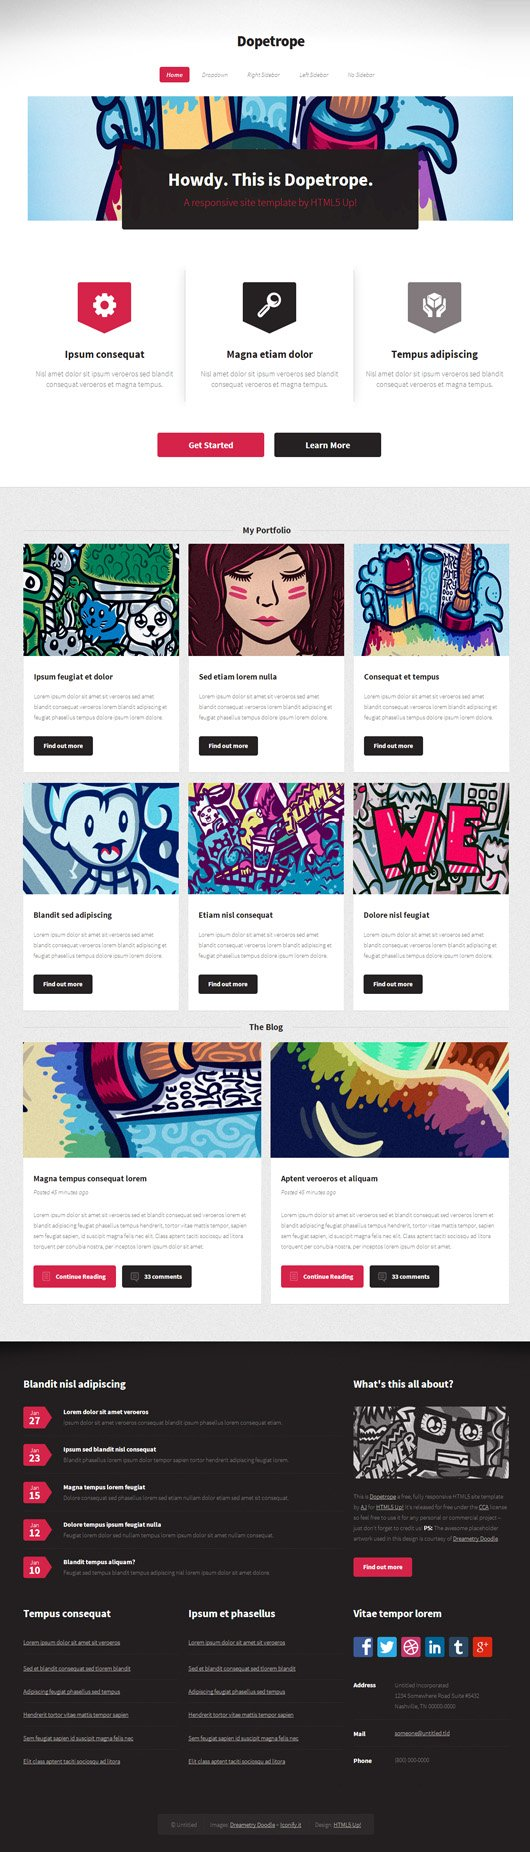 Free Responsive PSD Website Templates | ArtfulClub